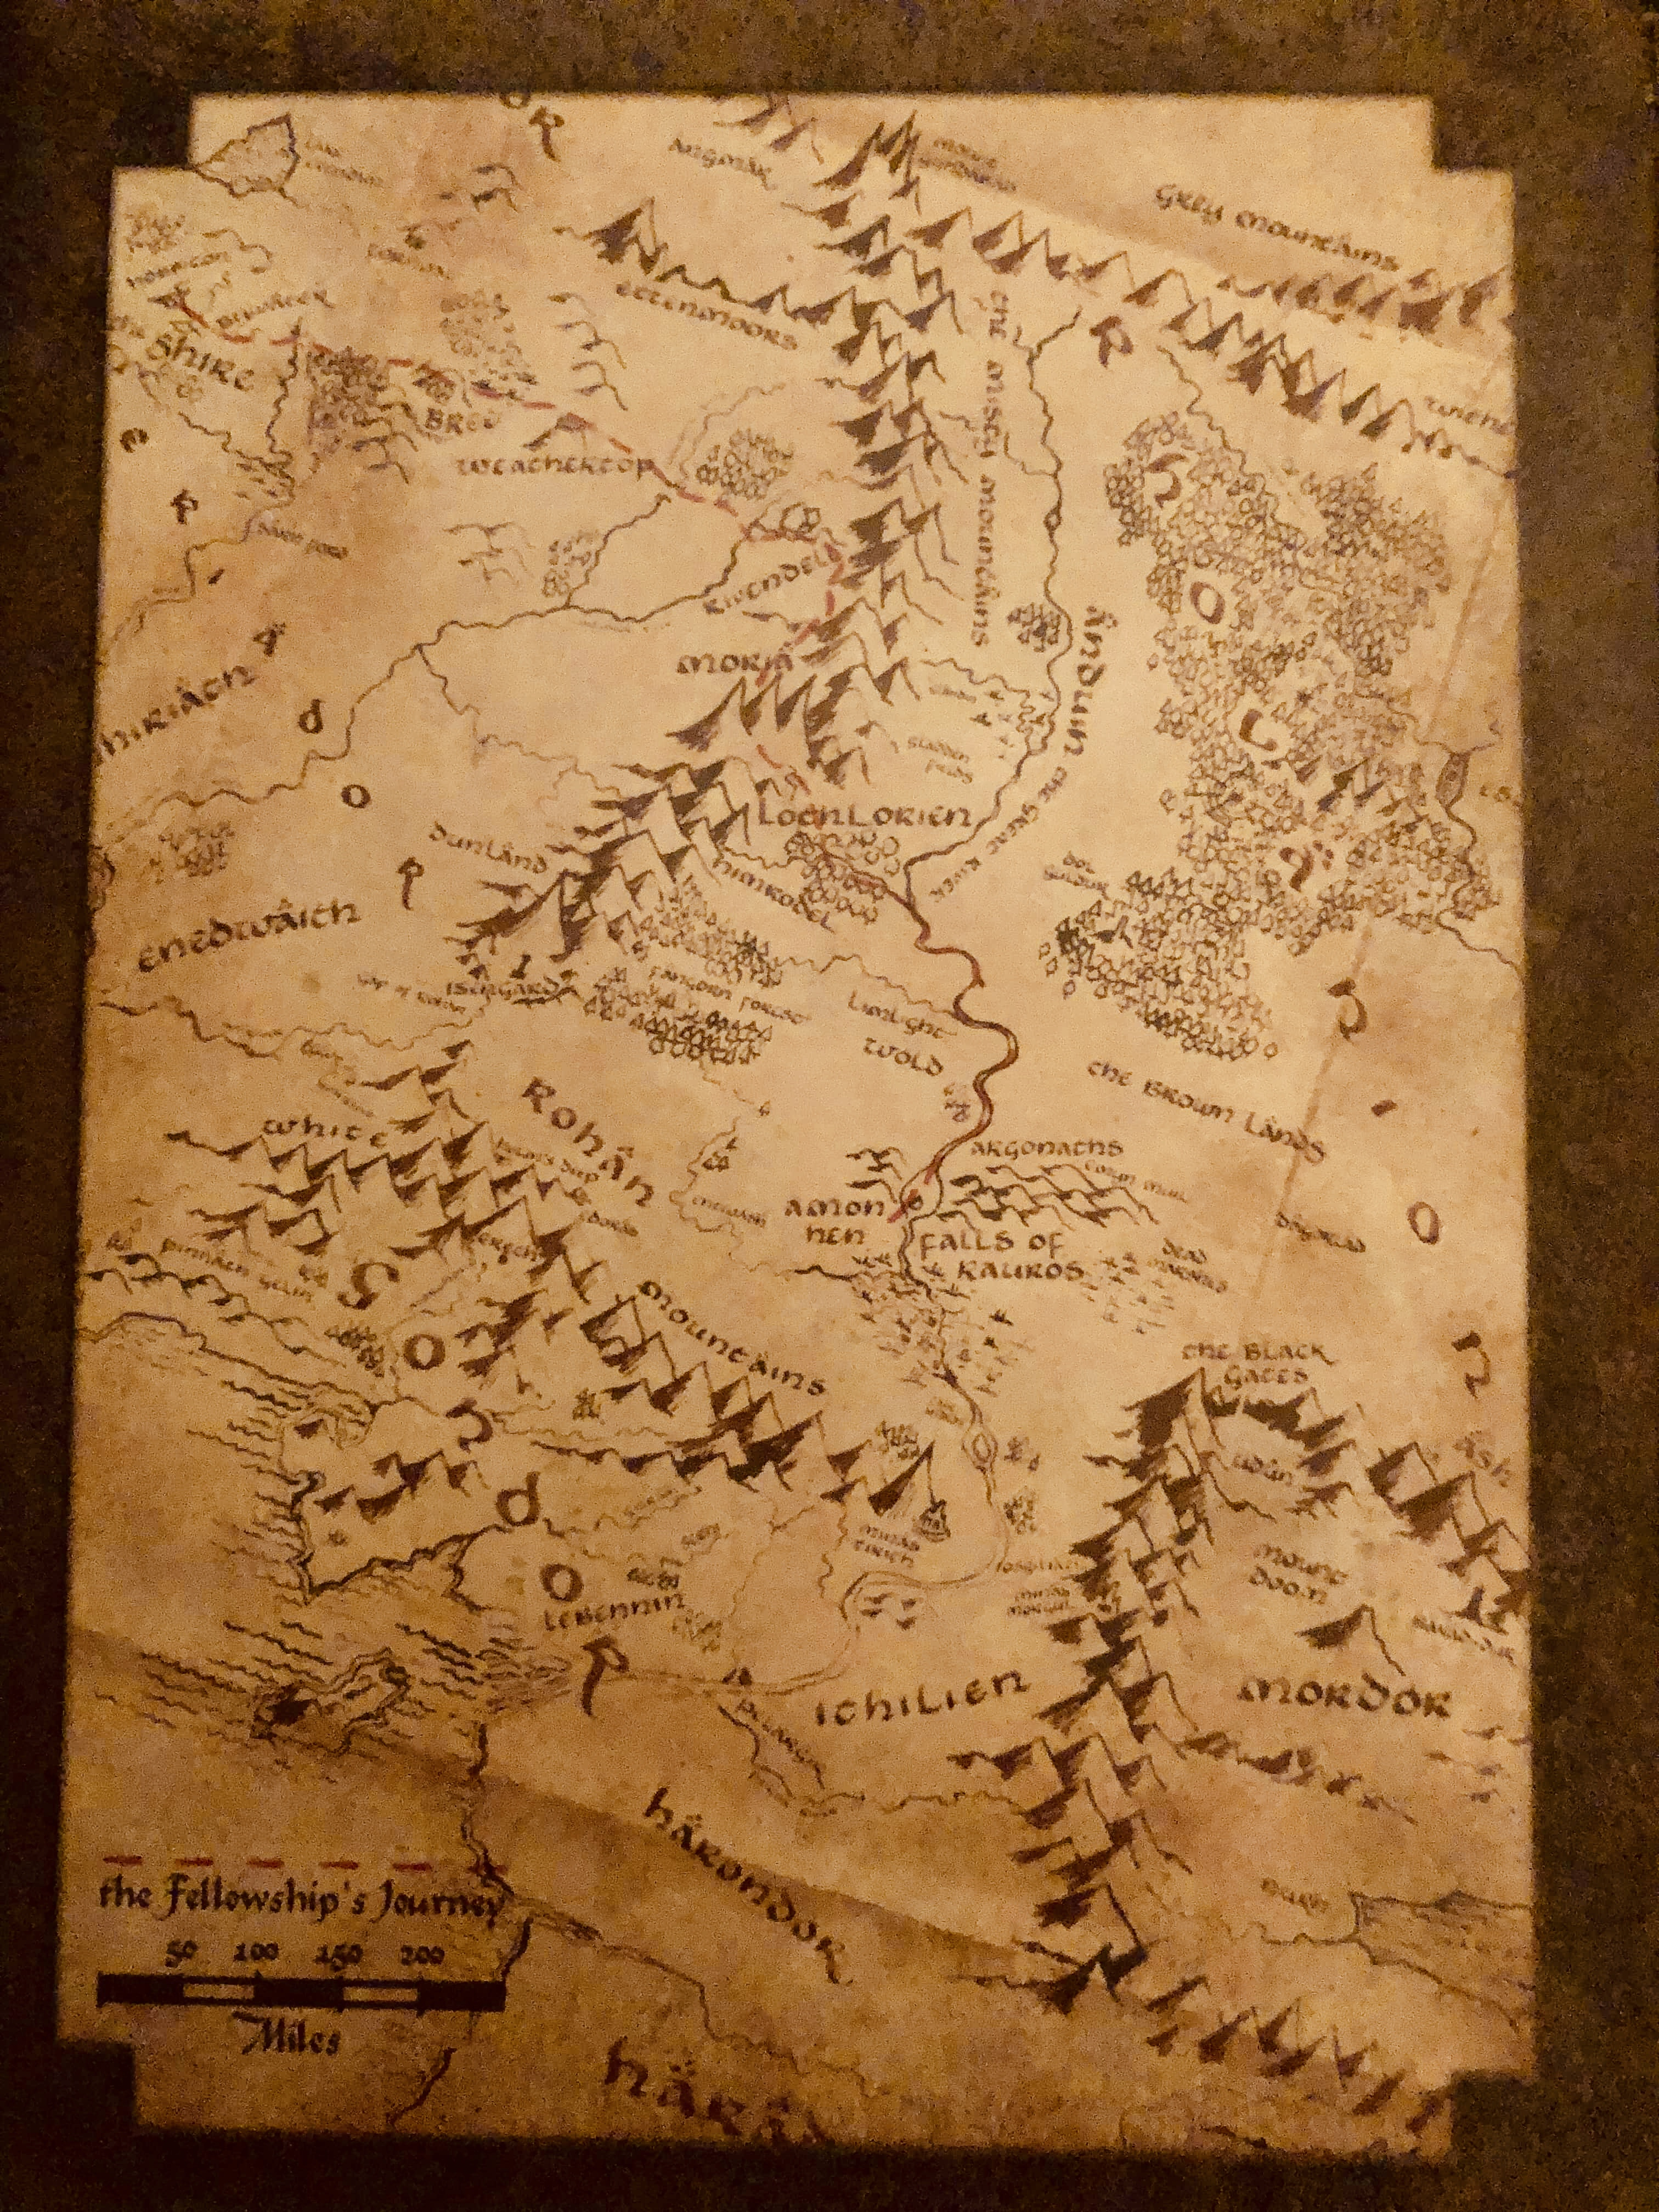 The middle-earth in the Lord of the Rings